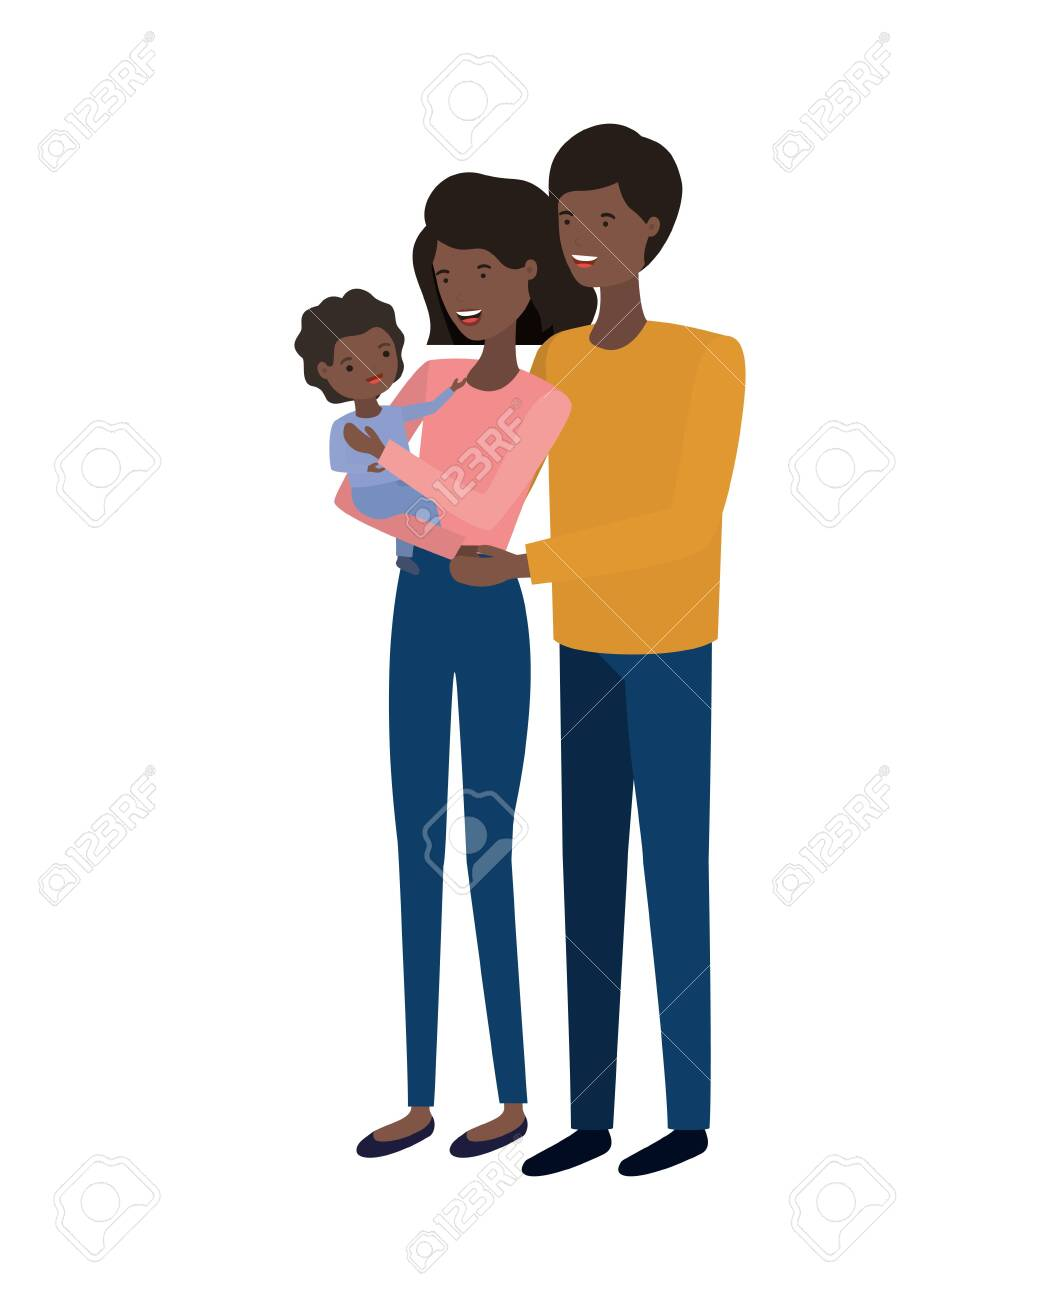 couple of parents with son avatar character vector illustration design - 122668136